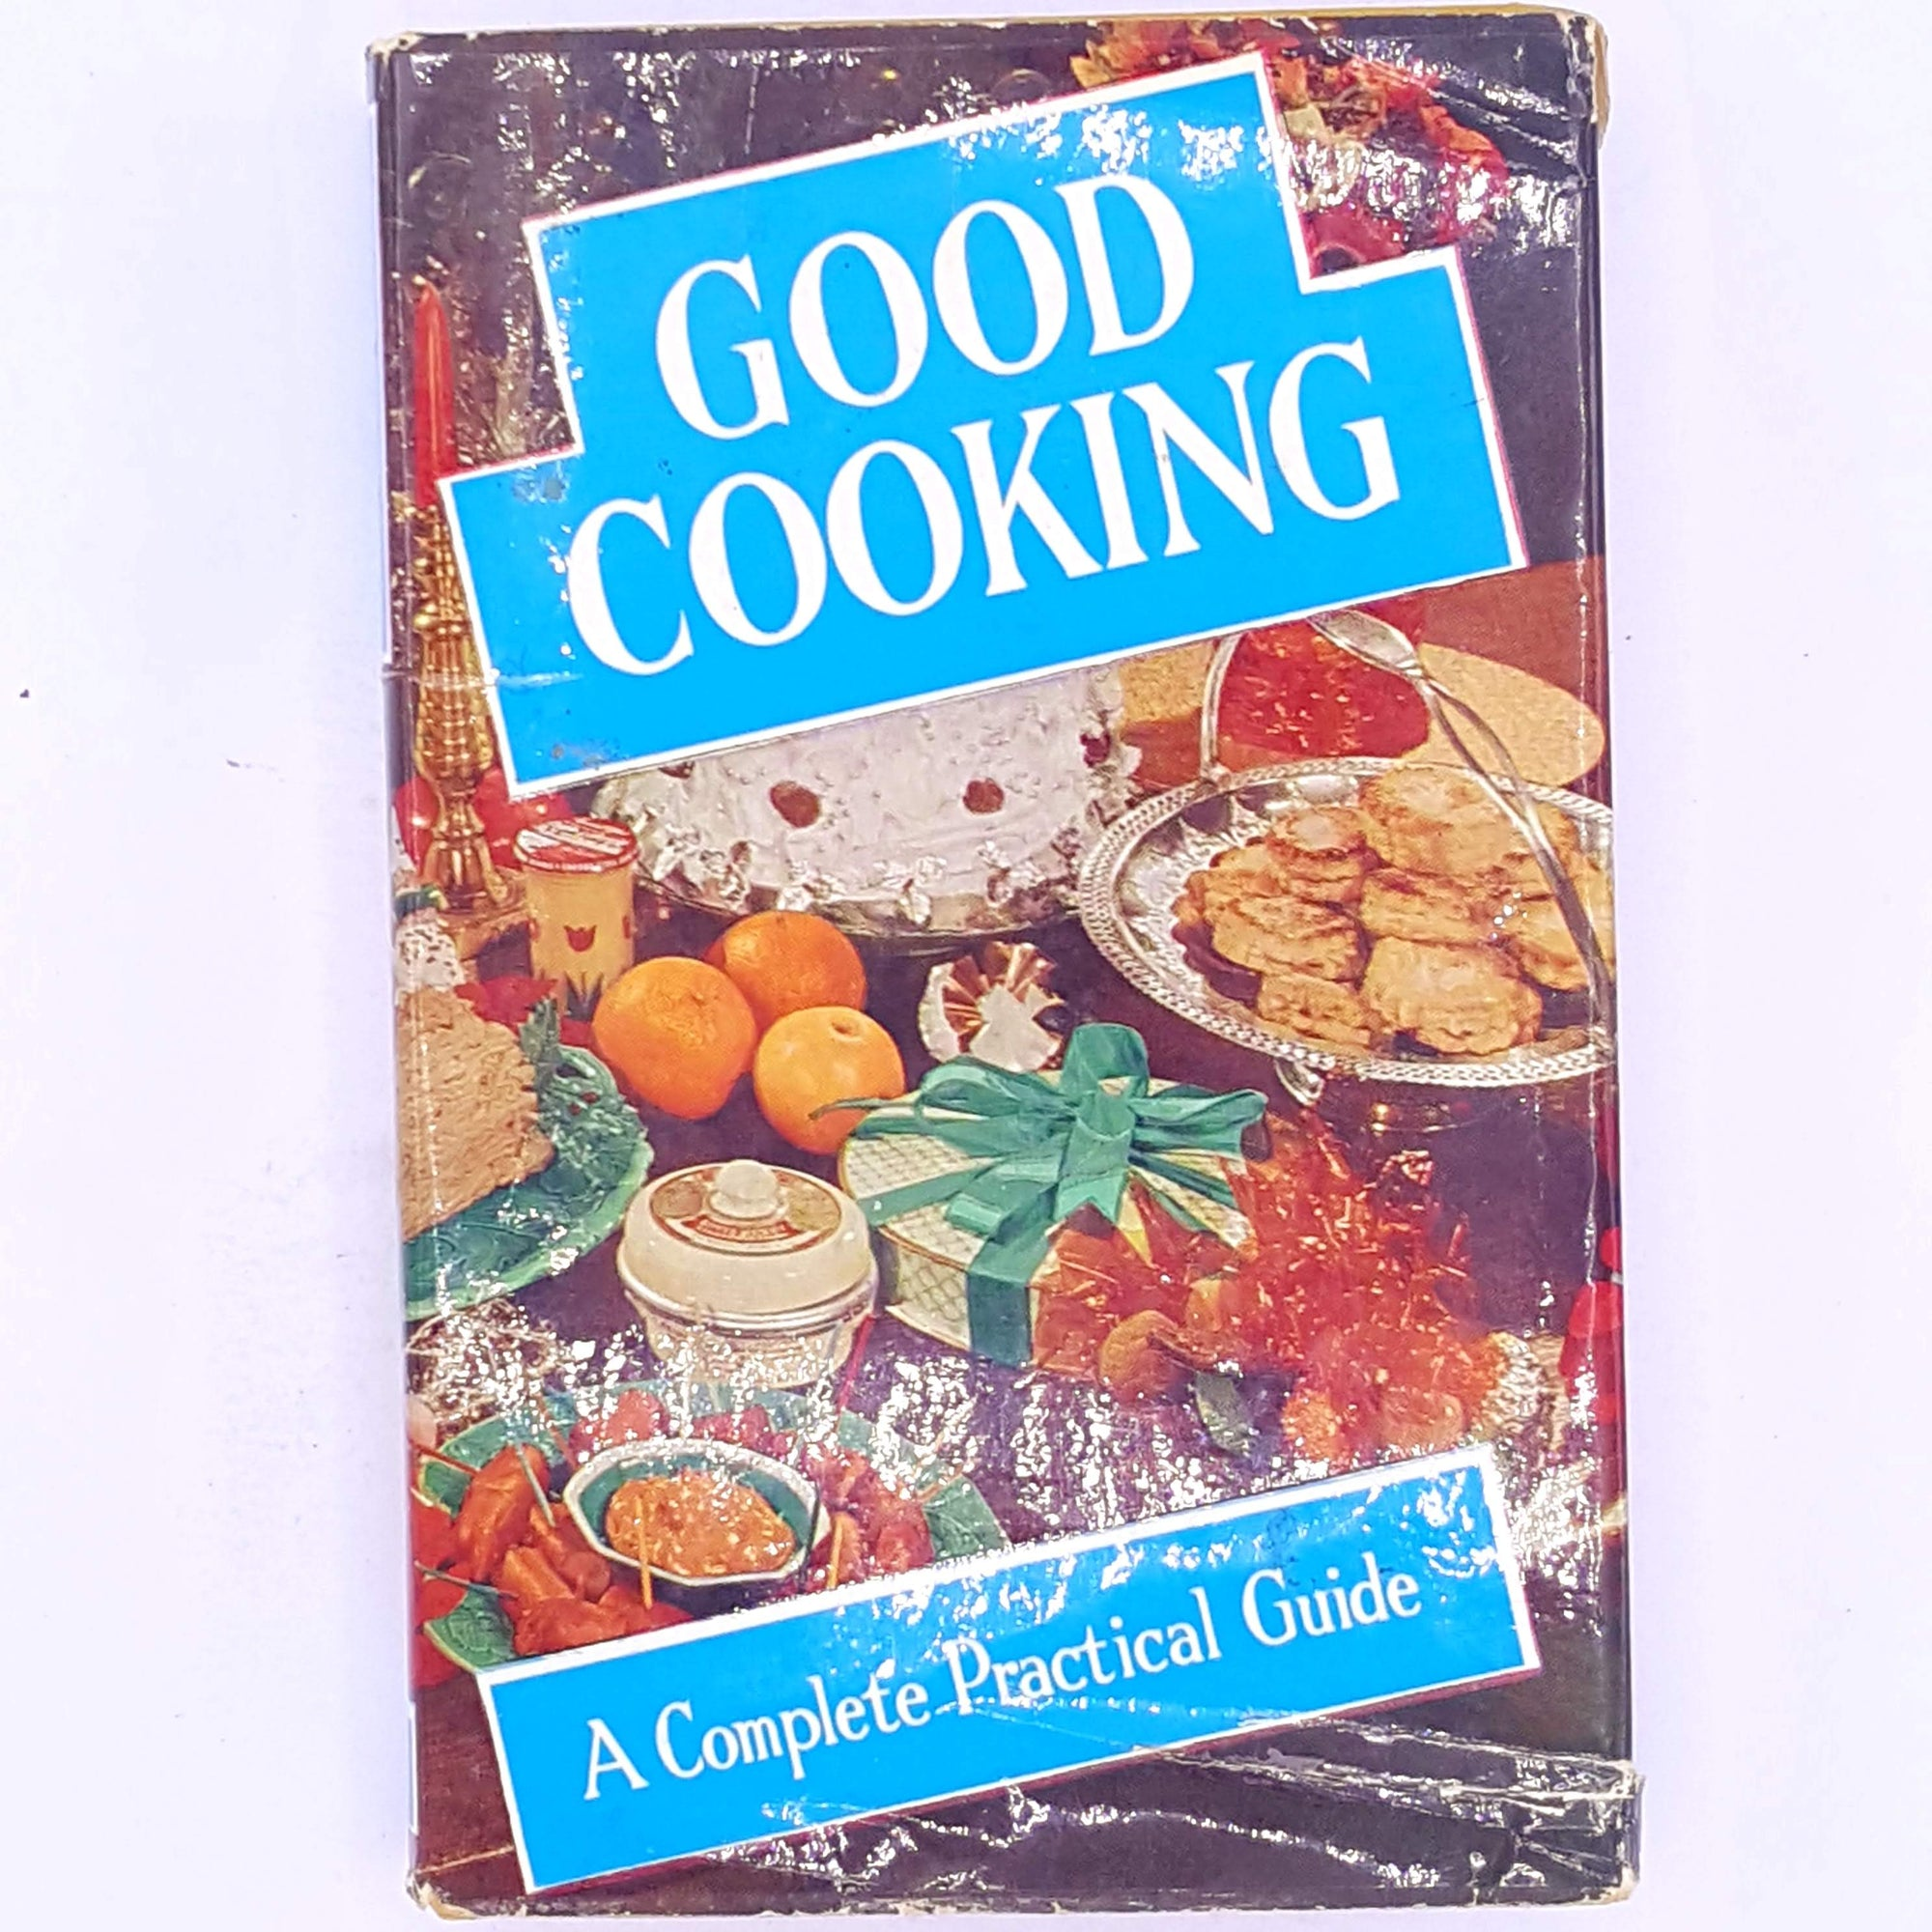 old-cooking-vintage-cookbooks-recipes-hobbies-country-house-library-food-decorative-gifts-thrift-for-foodies-patterned-good-cooking-a-complete-practical-guide-cookbook-books-baking- skills-antique-classic-